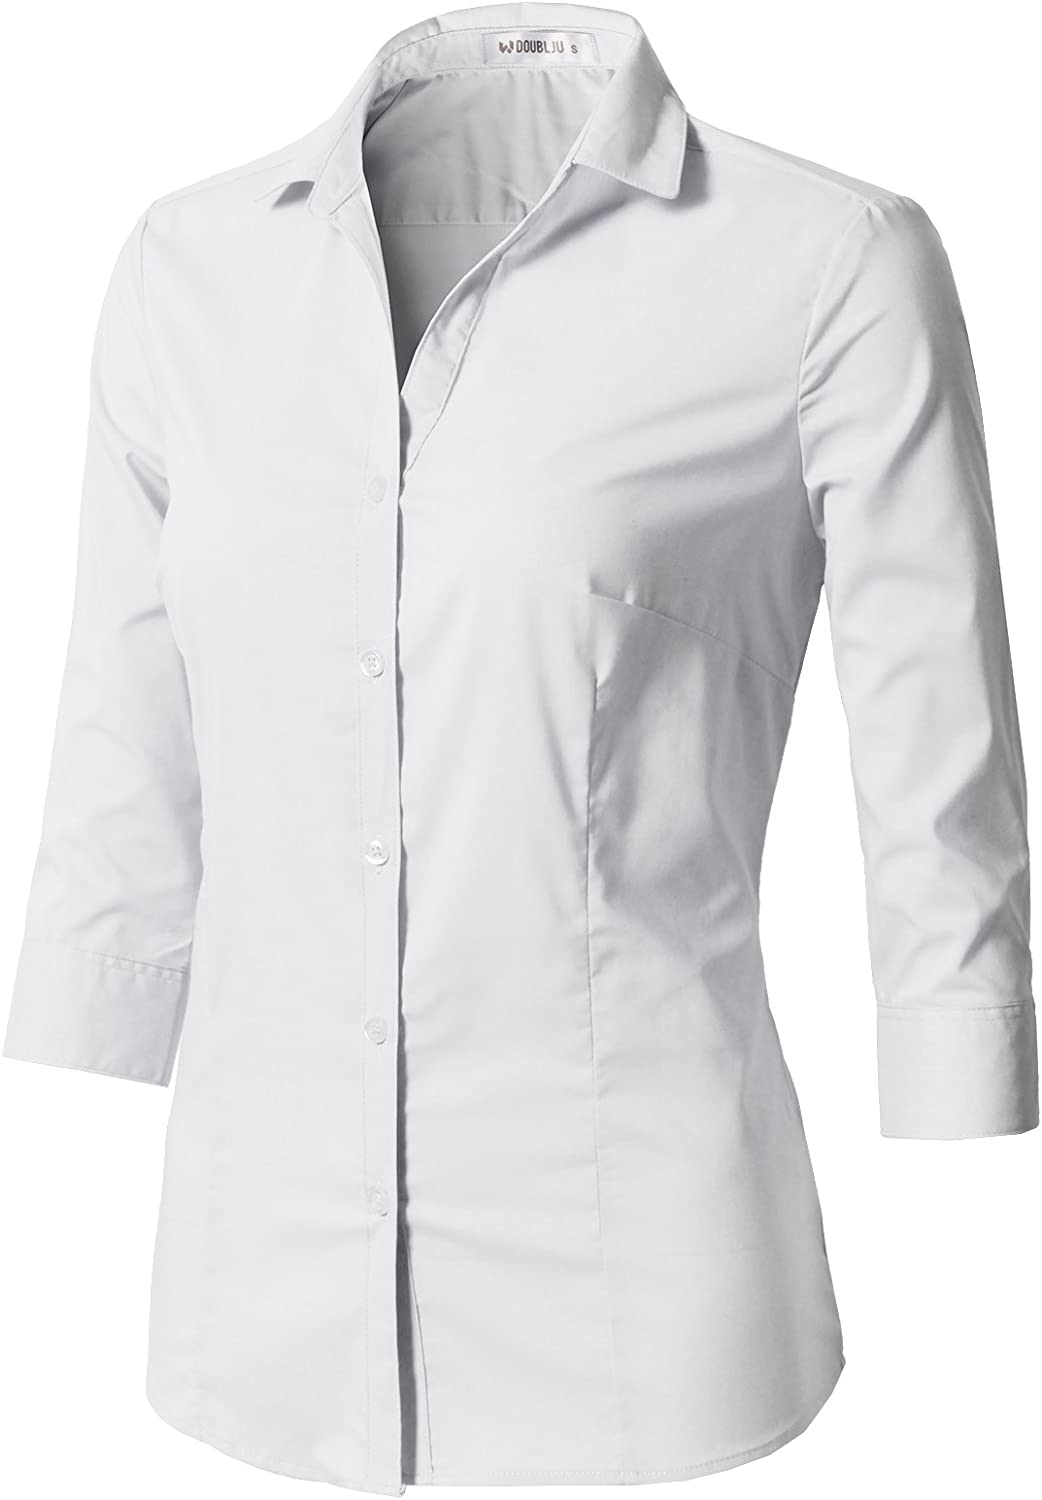 CLOVERY Ranking TOP5 Women's Formal Wear 3 4 Simple Button Do Sleeve Fit Slim 67% OFF of fixed price